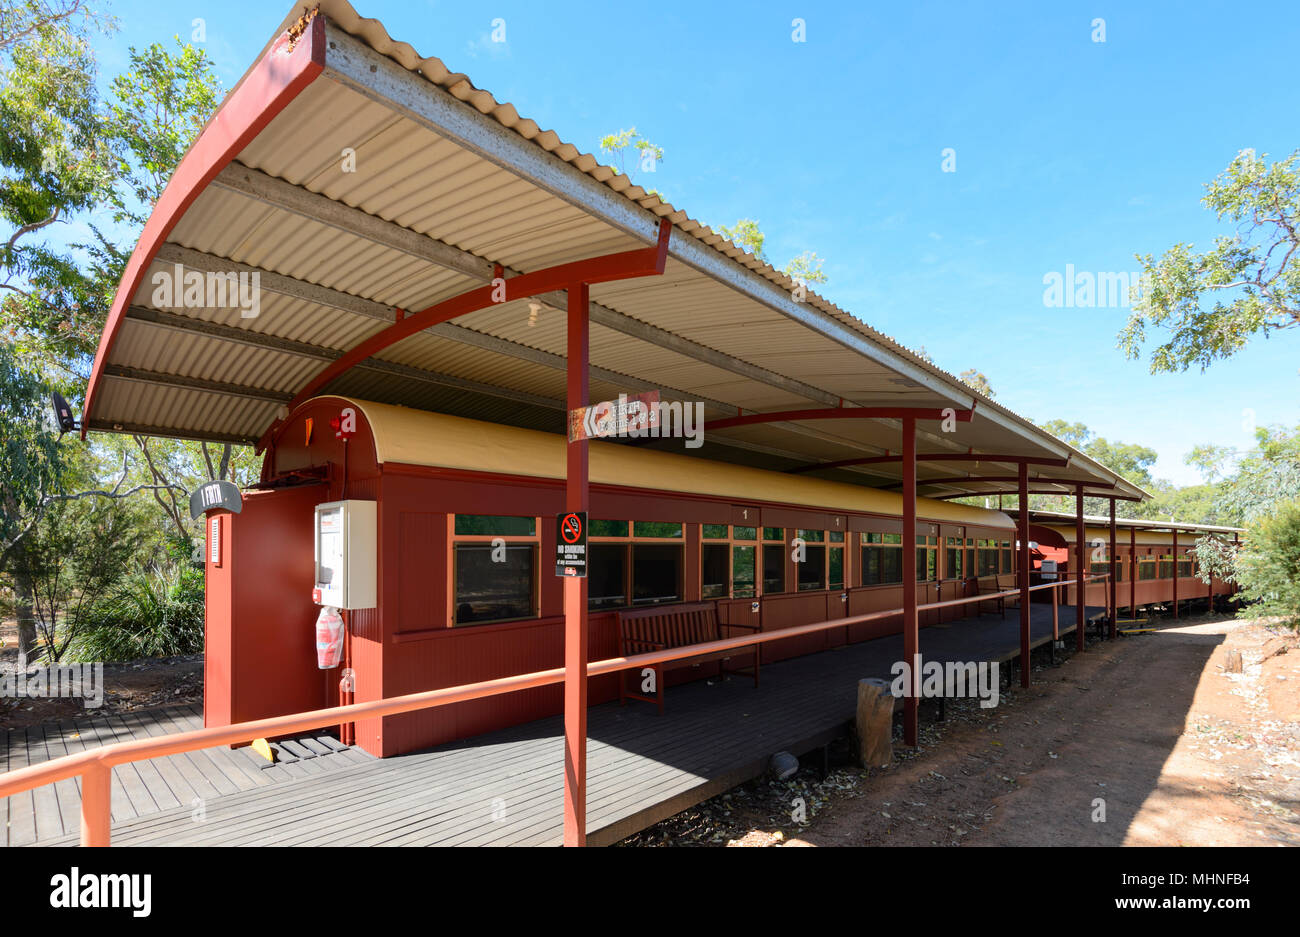 Accommodation in disused old train carriages, Undara Caravan Park, Undara Volcanic National Park, Queensland, QLD, Australia - Stock Image